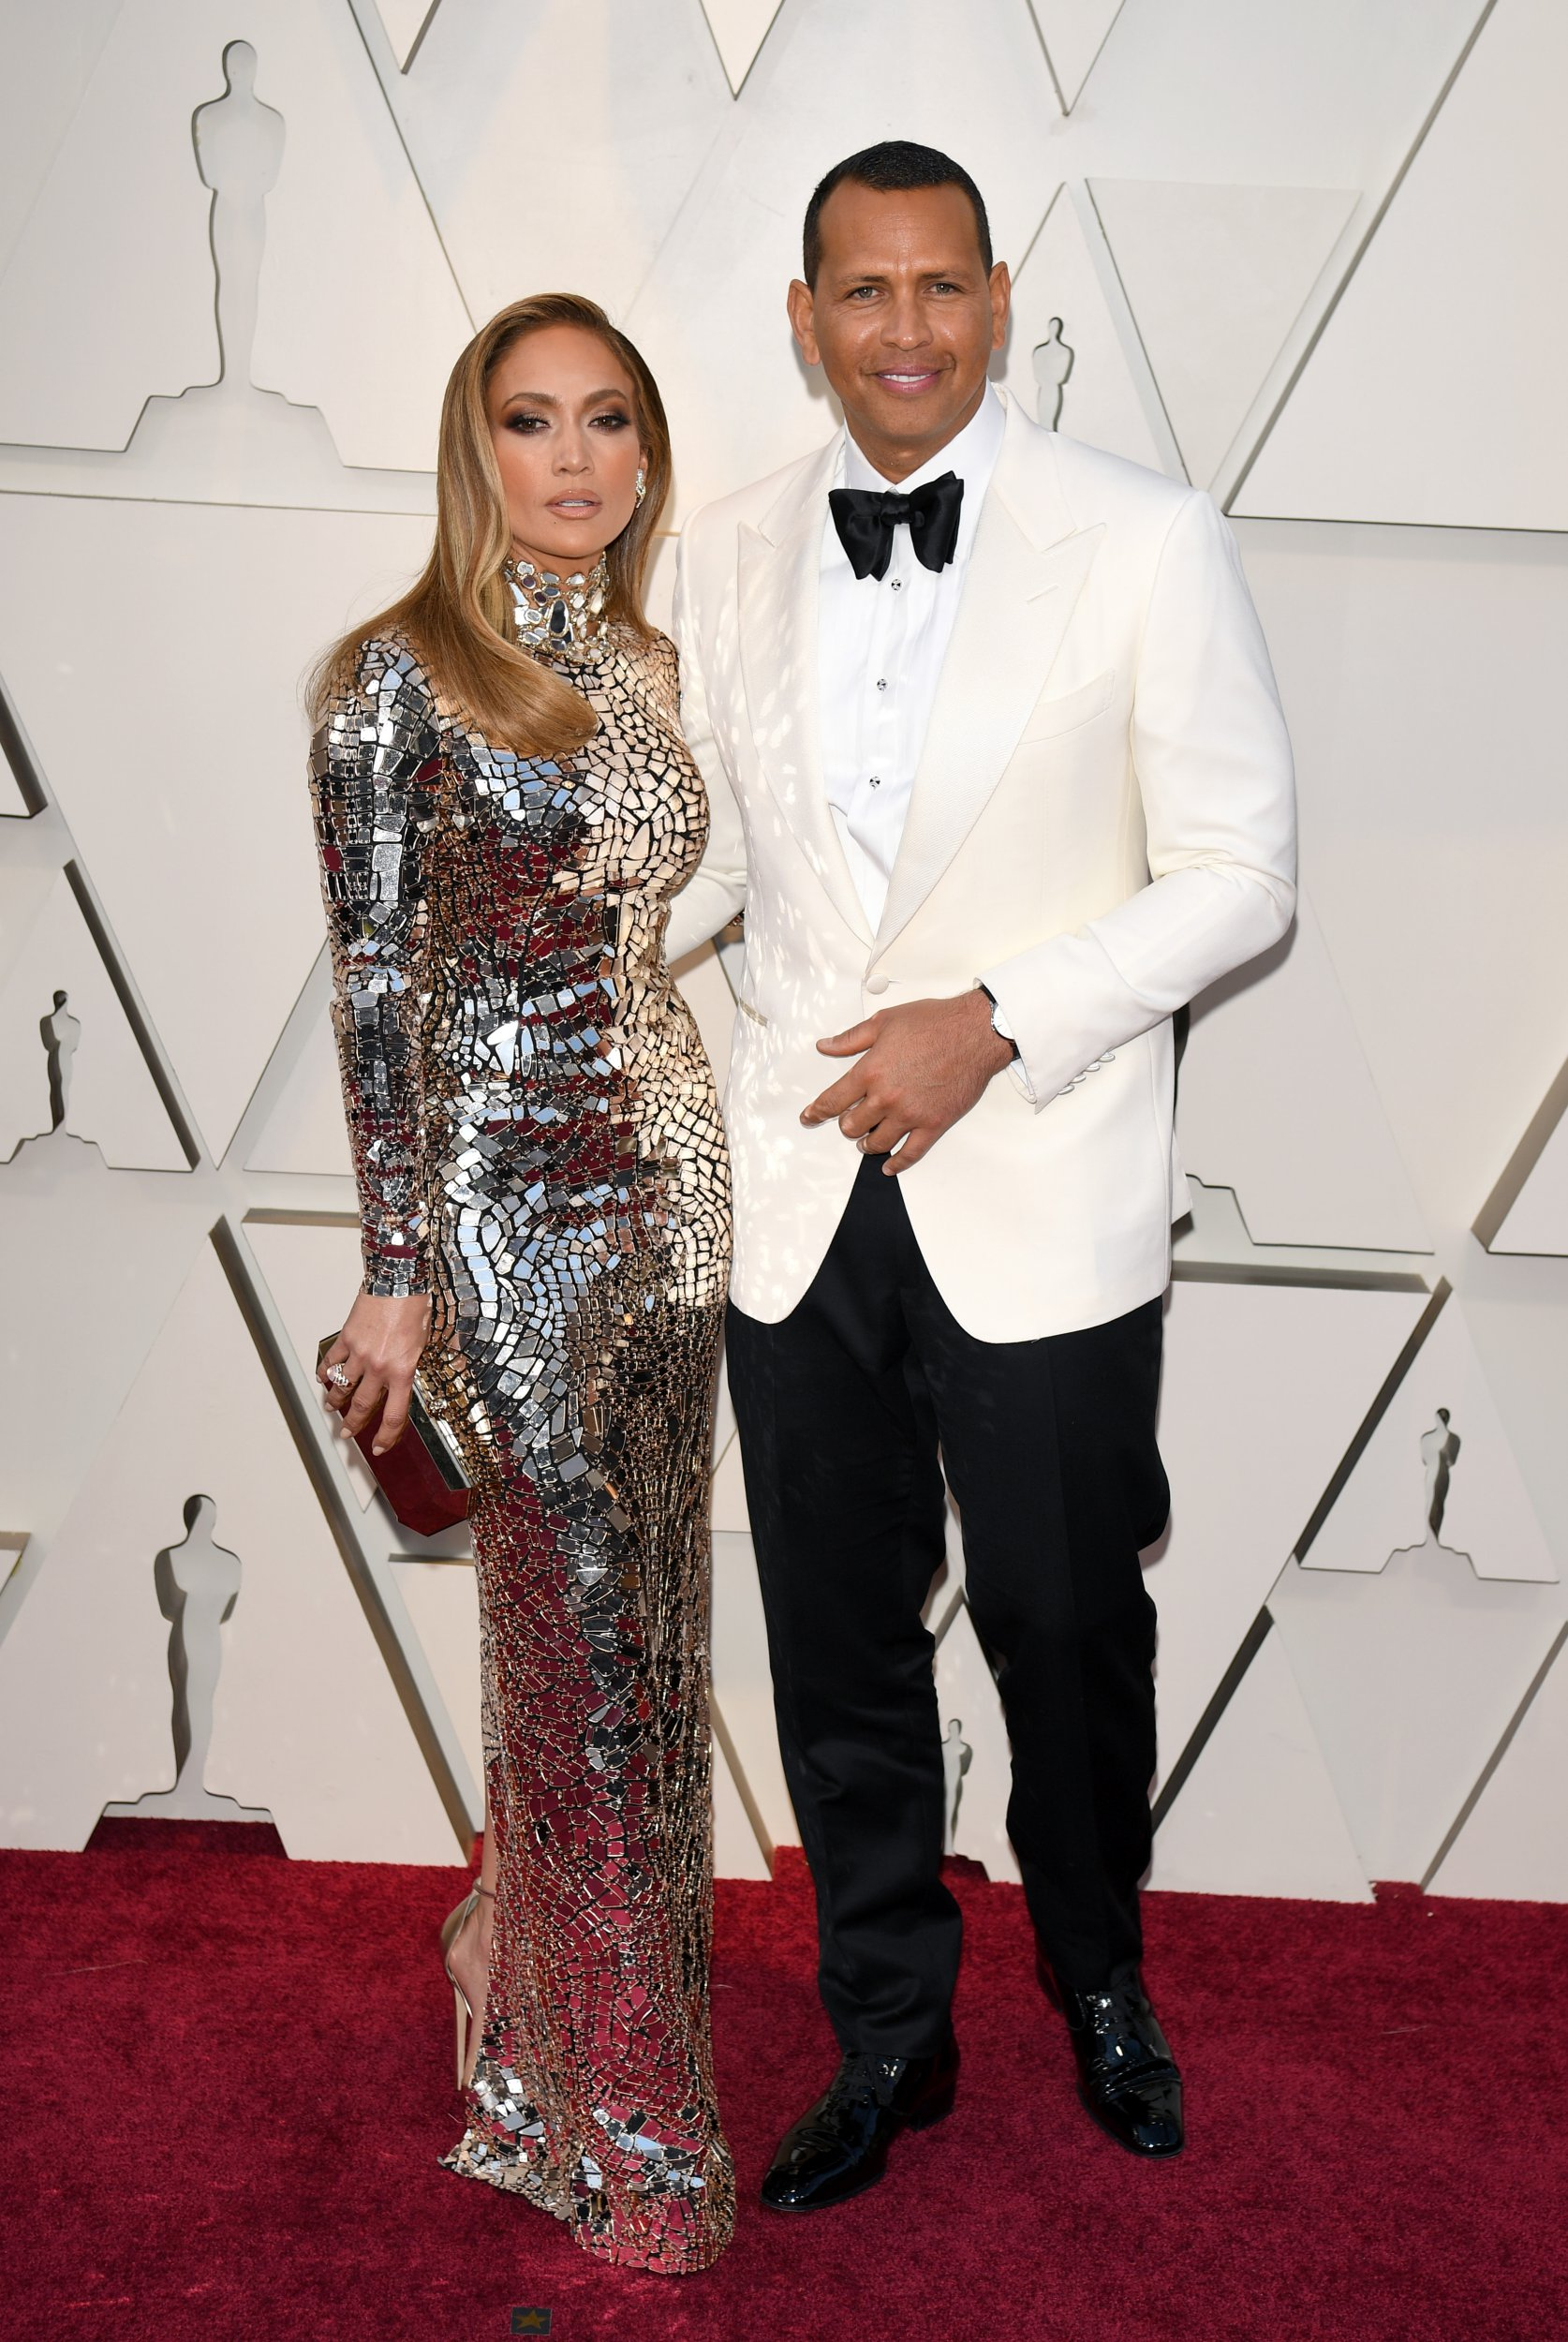 Mandatory Credit: Photo by Andrew H. Walker/BEI/REX/Shutterstock (10112916zo) Jennifer Lopez and Alex Rodriguez 91st Annual Academy Awards, Arrivals, Los Angeles, USA - 24 Feb 2019